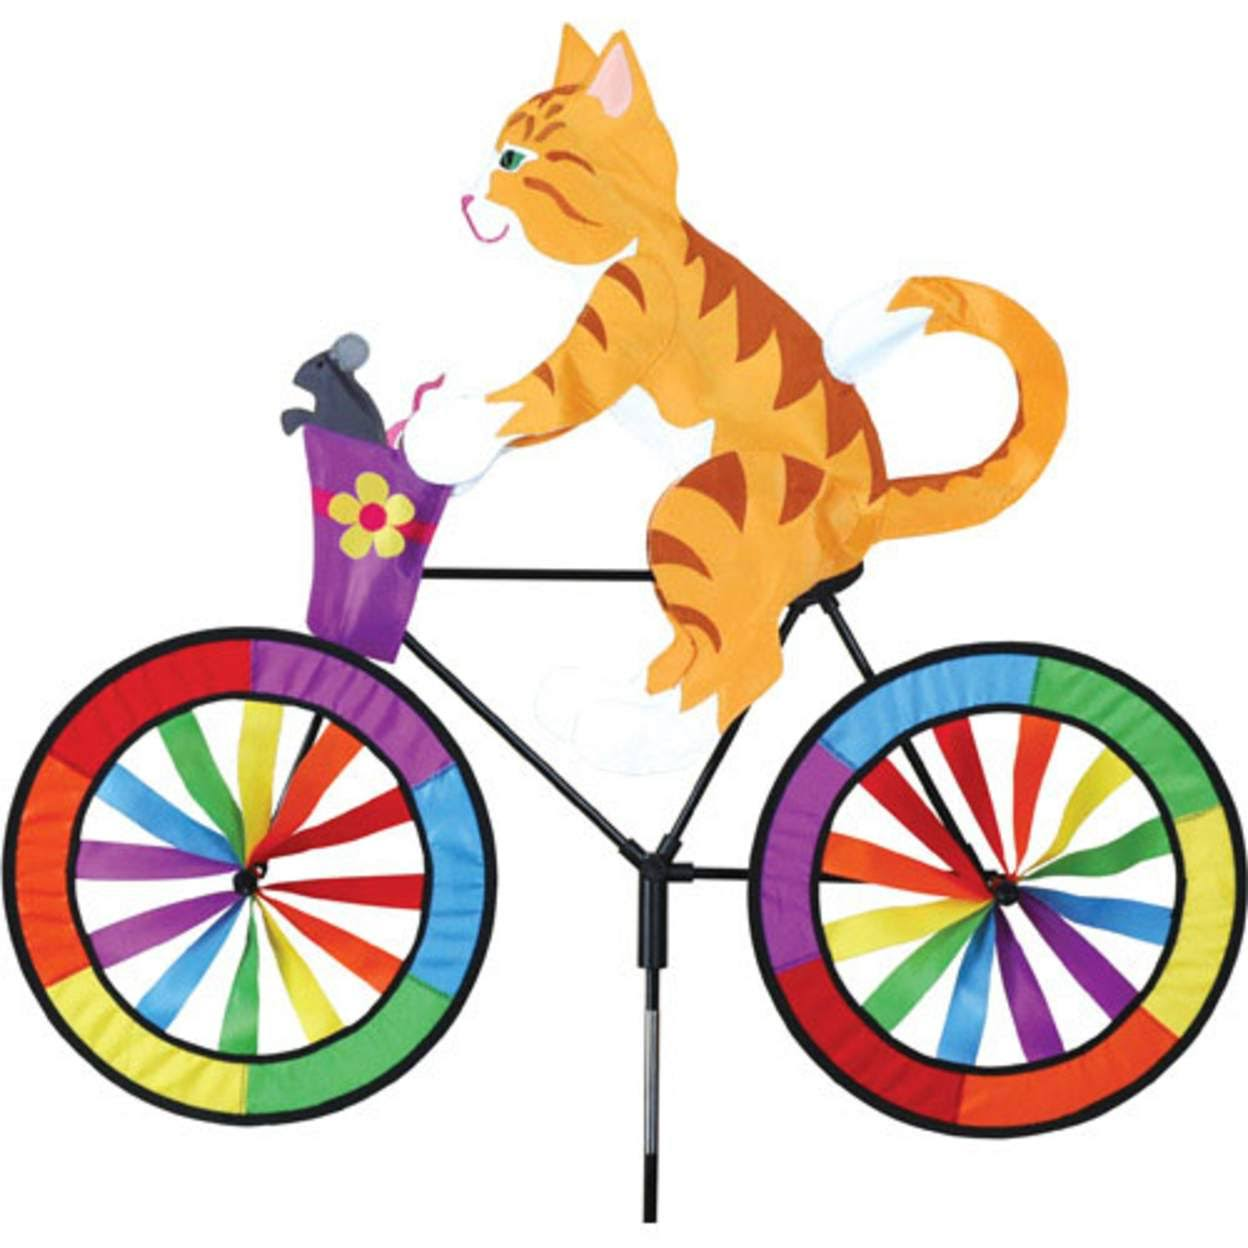 Premier Designs Kitty Bike Spinner